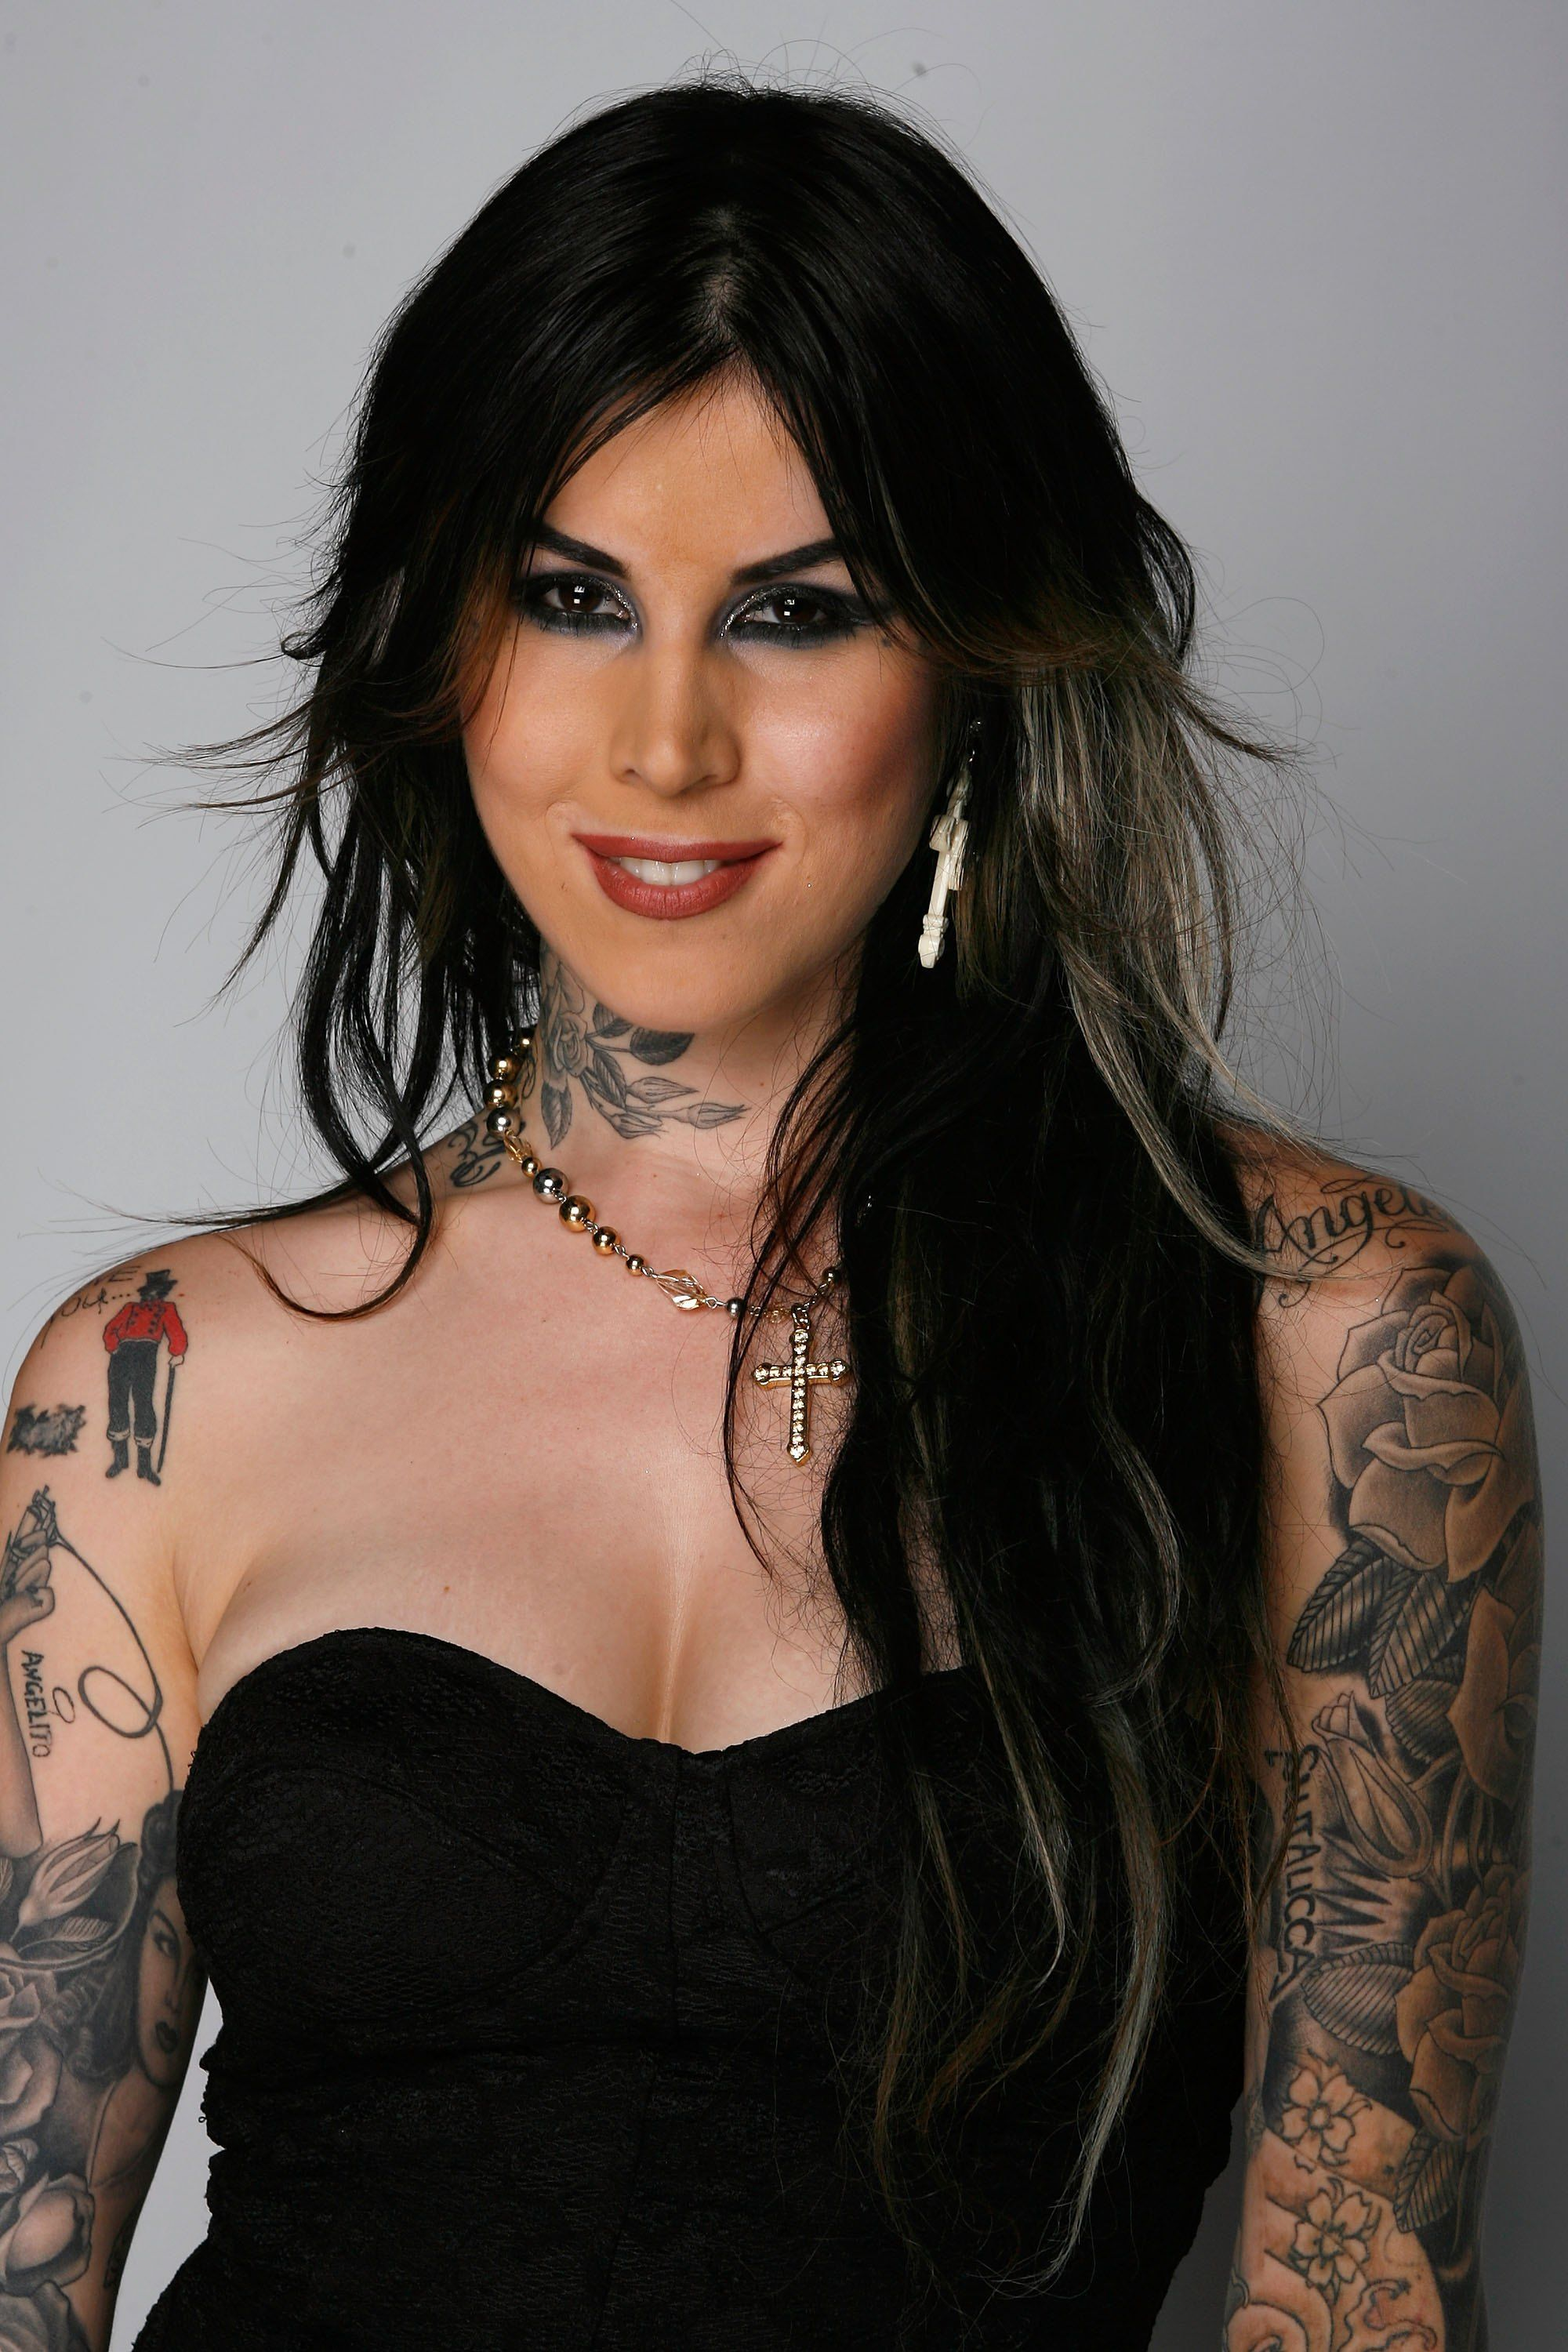 I want her to do my next big ink job!